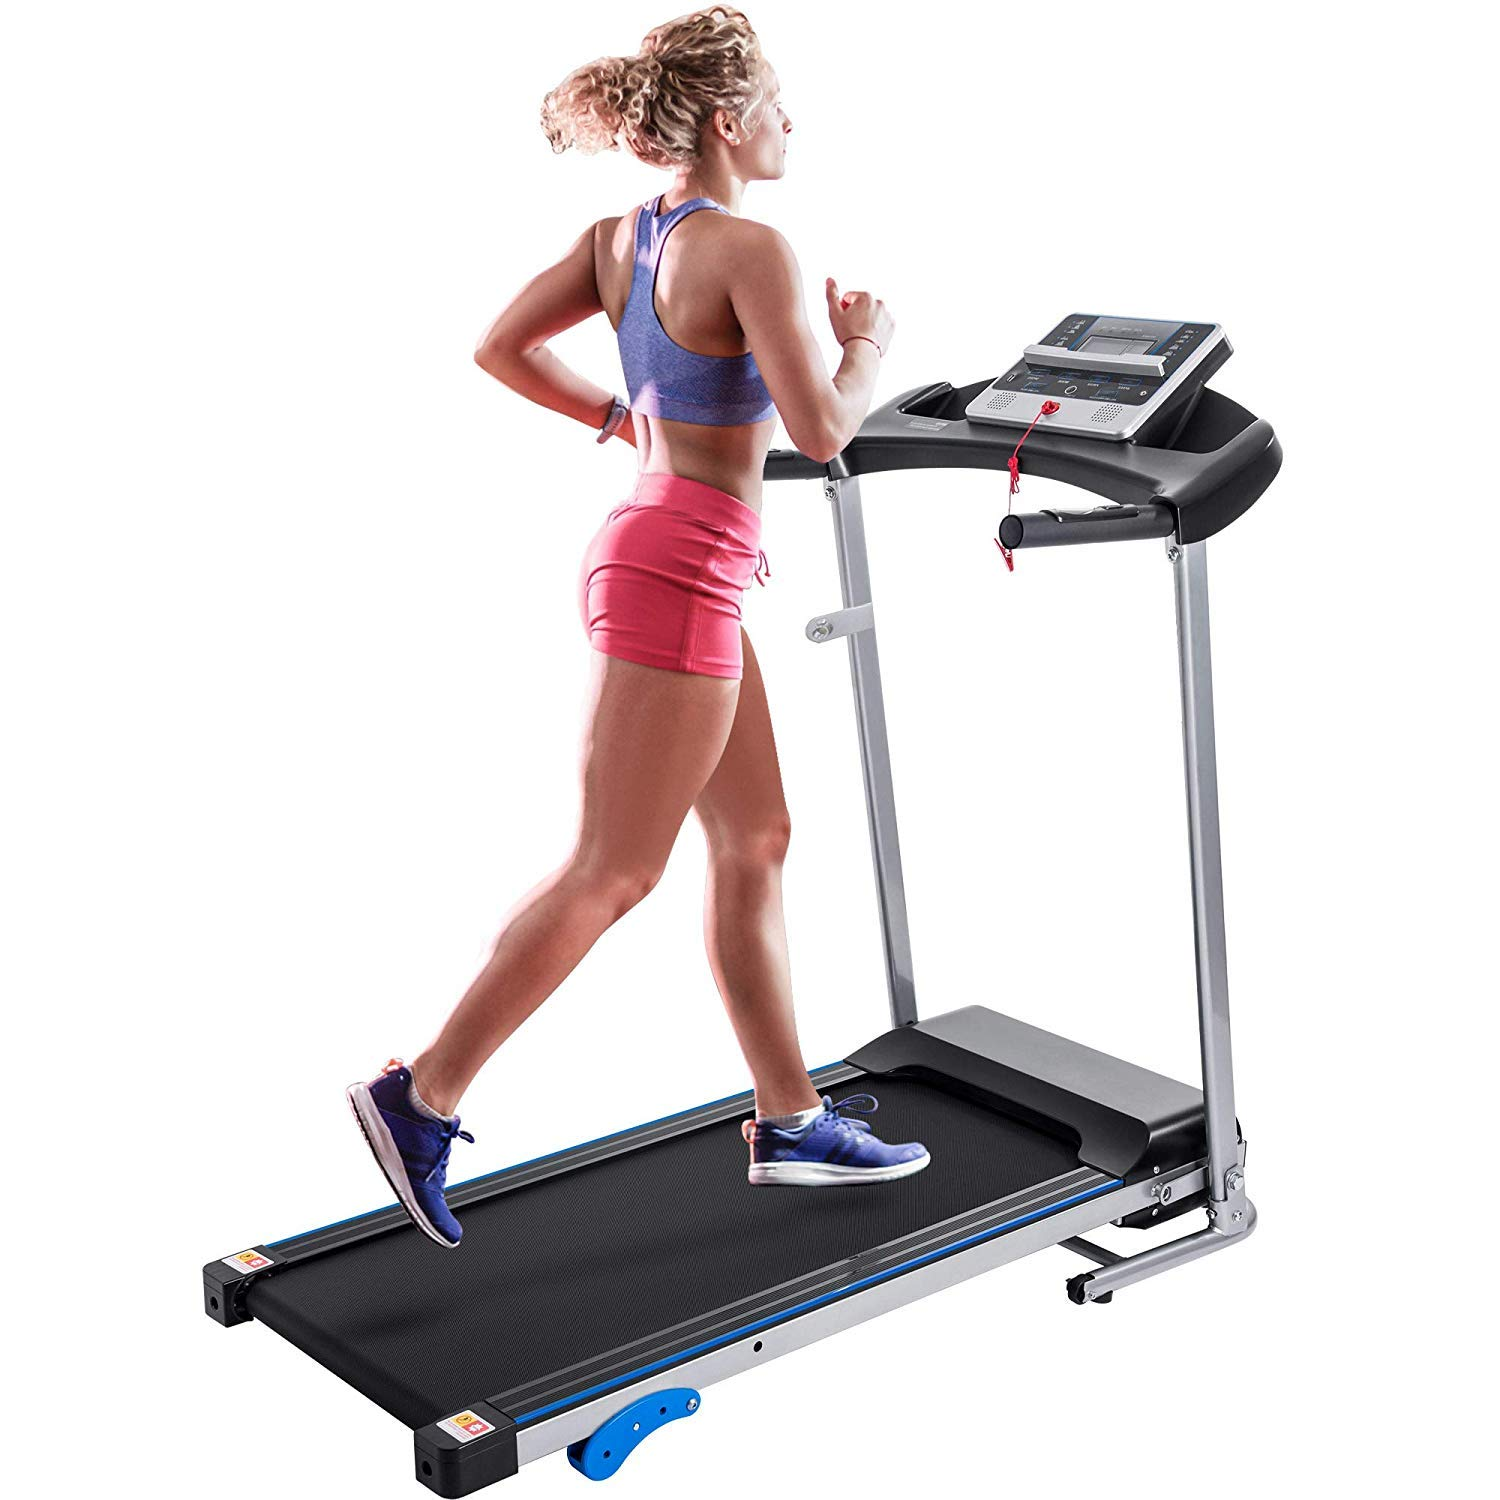 Merax Electric Folding Treadmill Motorized Running Machine with Speaker and Built-in Programs for Home, Easy Assembly